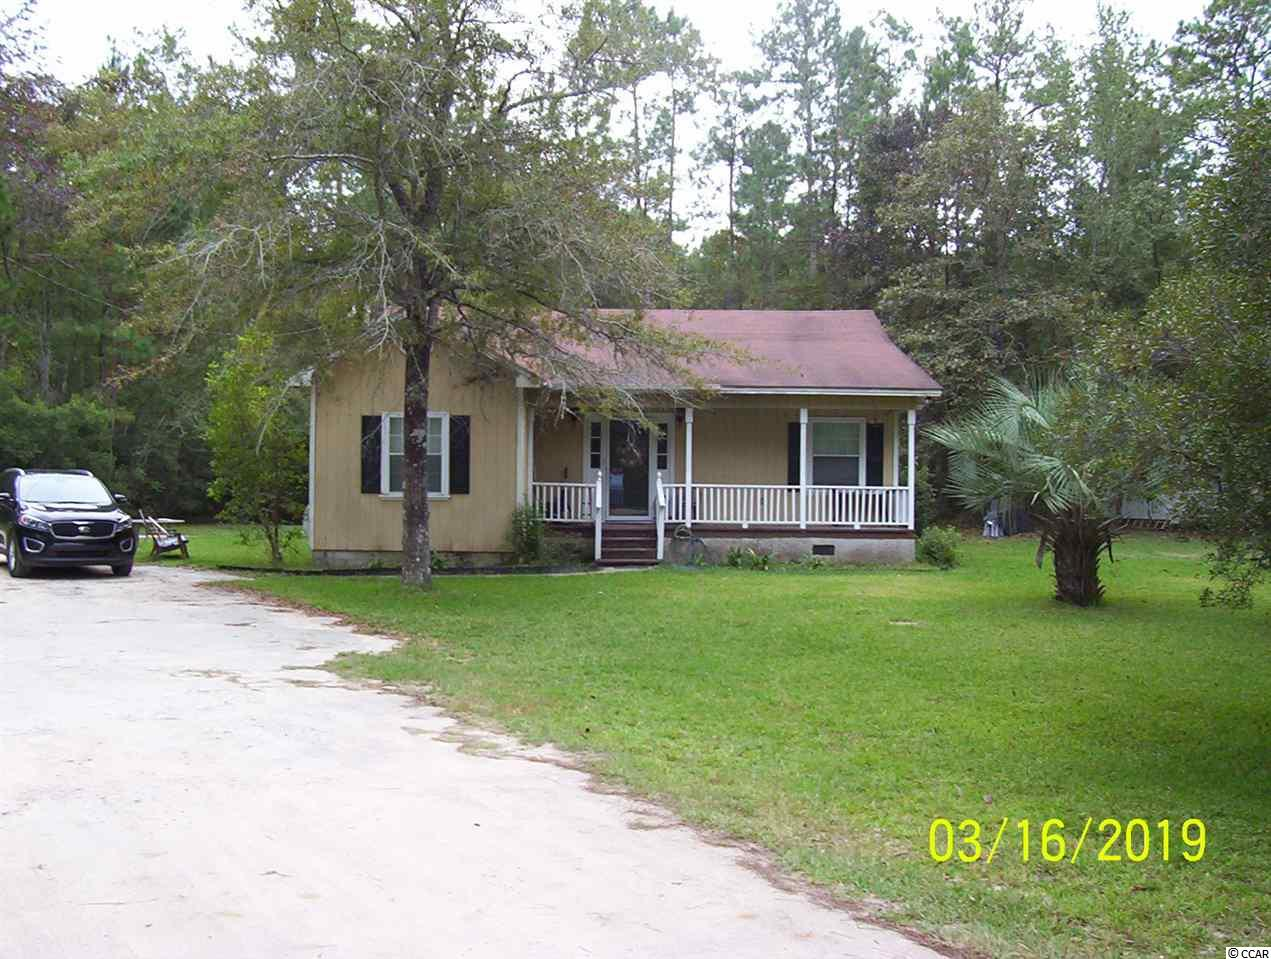 VERY NICE 4BR LOW COUNTRY HOUSE SURROUNDED BY PEACEFUL FOREST, SUNKEN LIVING ROOM, WASHER/DRYER, LARGE FRONT PORCH, LARGE REAR DECK, SEE THE DEER RUN WILD, OWNER WOULD PREFER TO SELL HOUSE AS IS, WHERE IS, DIRT DRIVEWAY IS IN BAD CONDITION, HWY. 57 IS CRAZY WITH NEW CONSTRUCTION, THERE IS NOT ANOTHER HOUSE IN THIS PRIVATE LOCATION OR LAND SIZE AT THIS PRICE, OWNER/BROKER!!!!!